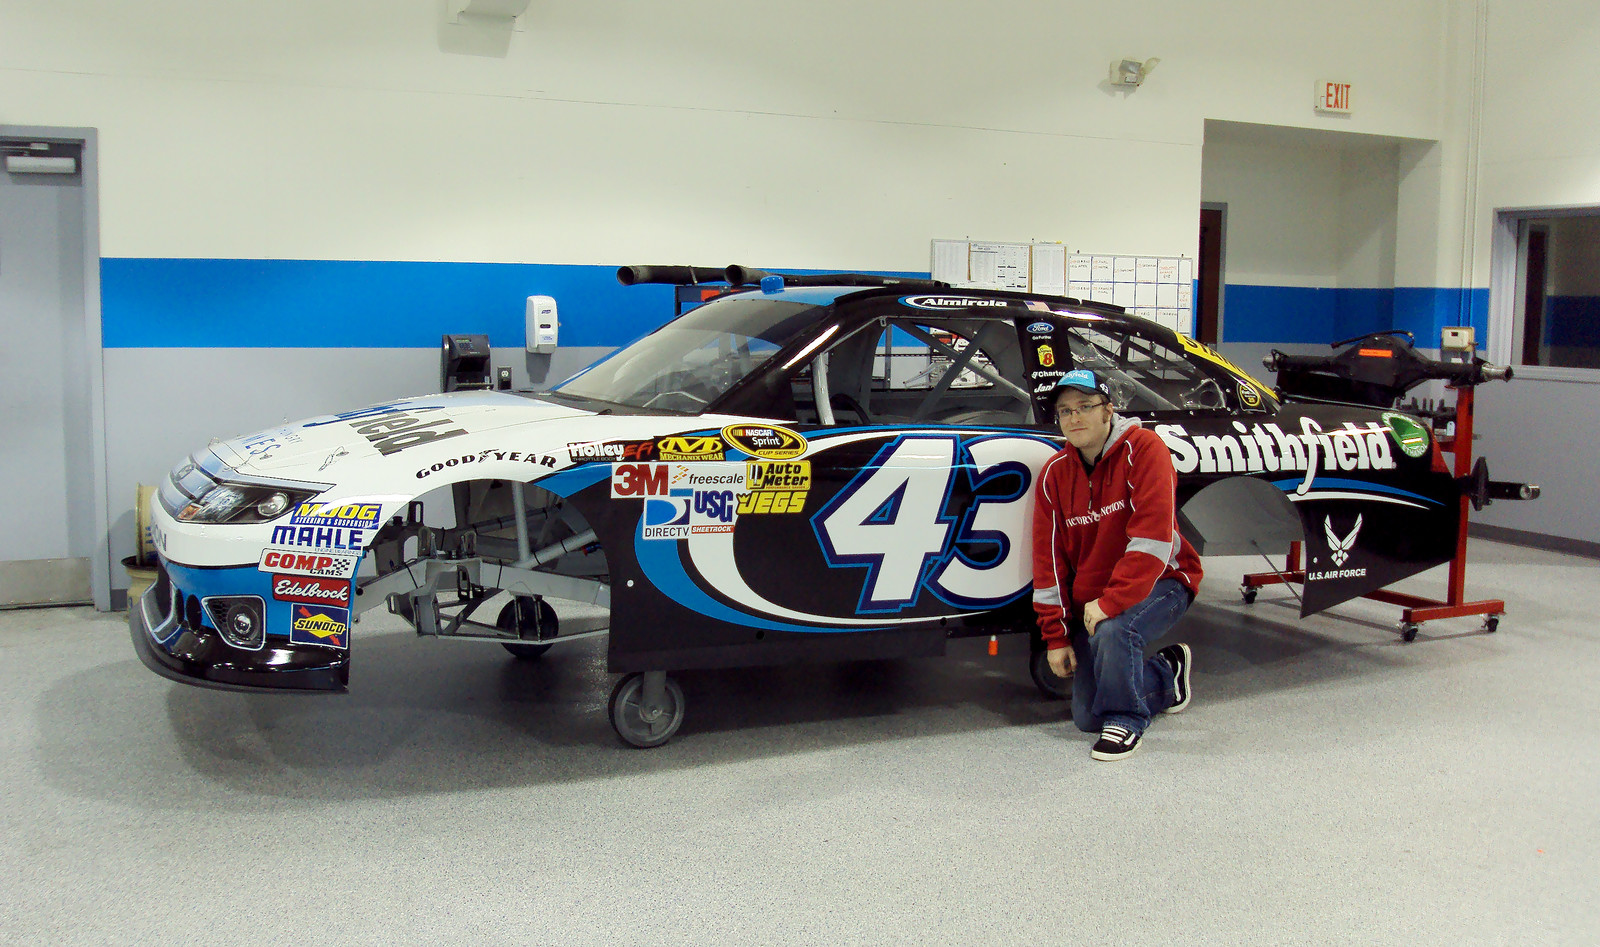 Posing with a newly wrapped 2012 #43 Smithfield car at the Richard Petty Motorsports race shop in Concord, North Carolina